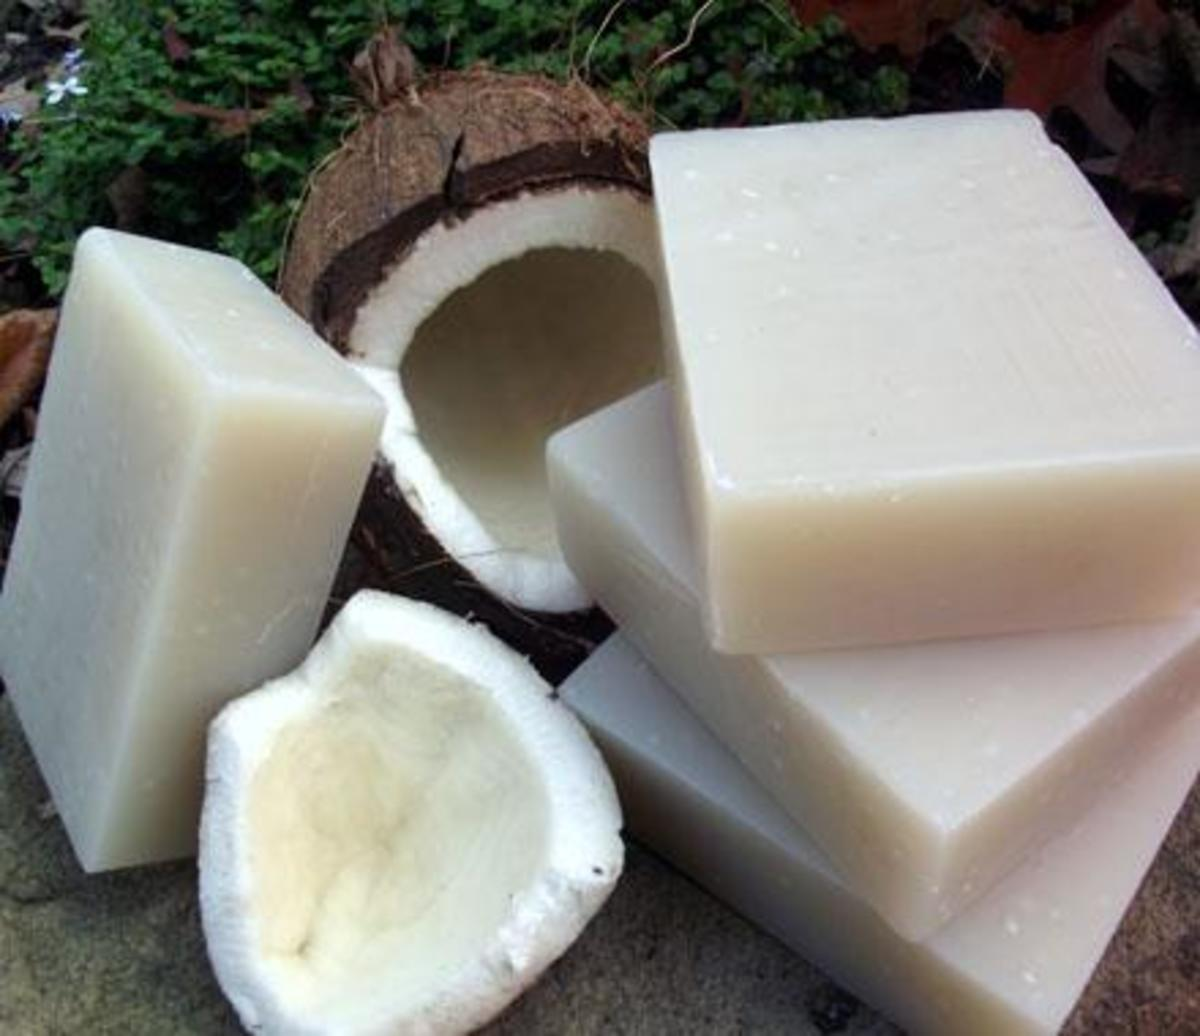 Shampoo Bars vs. Bottled Shampoo